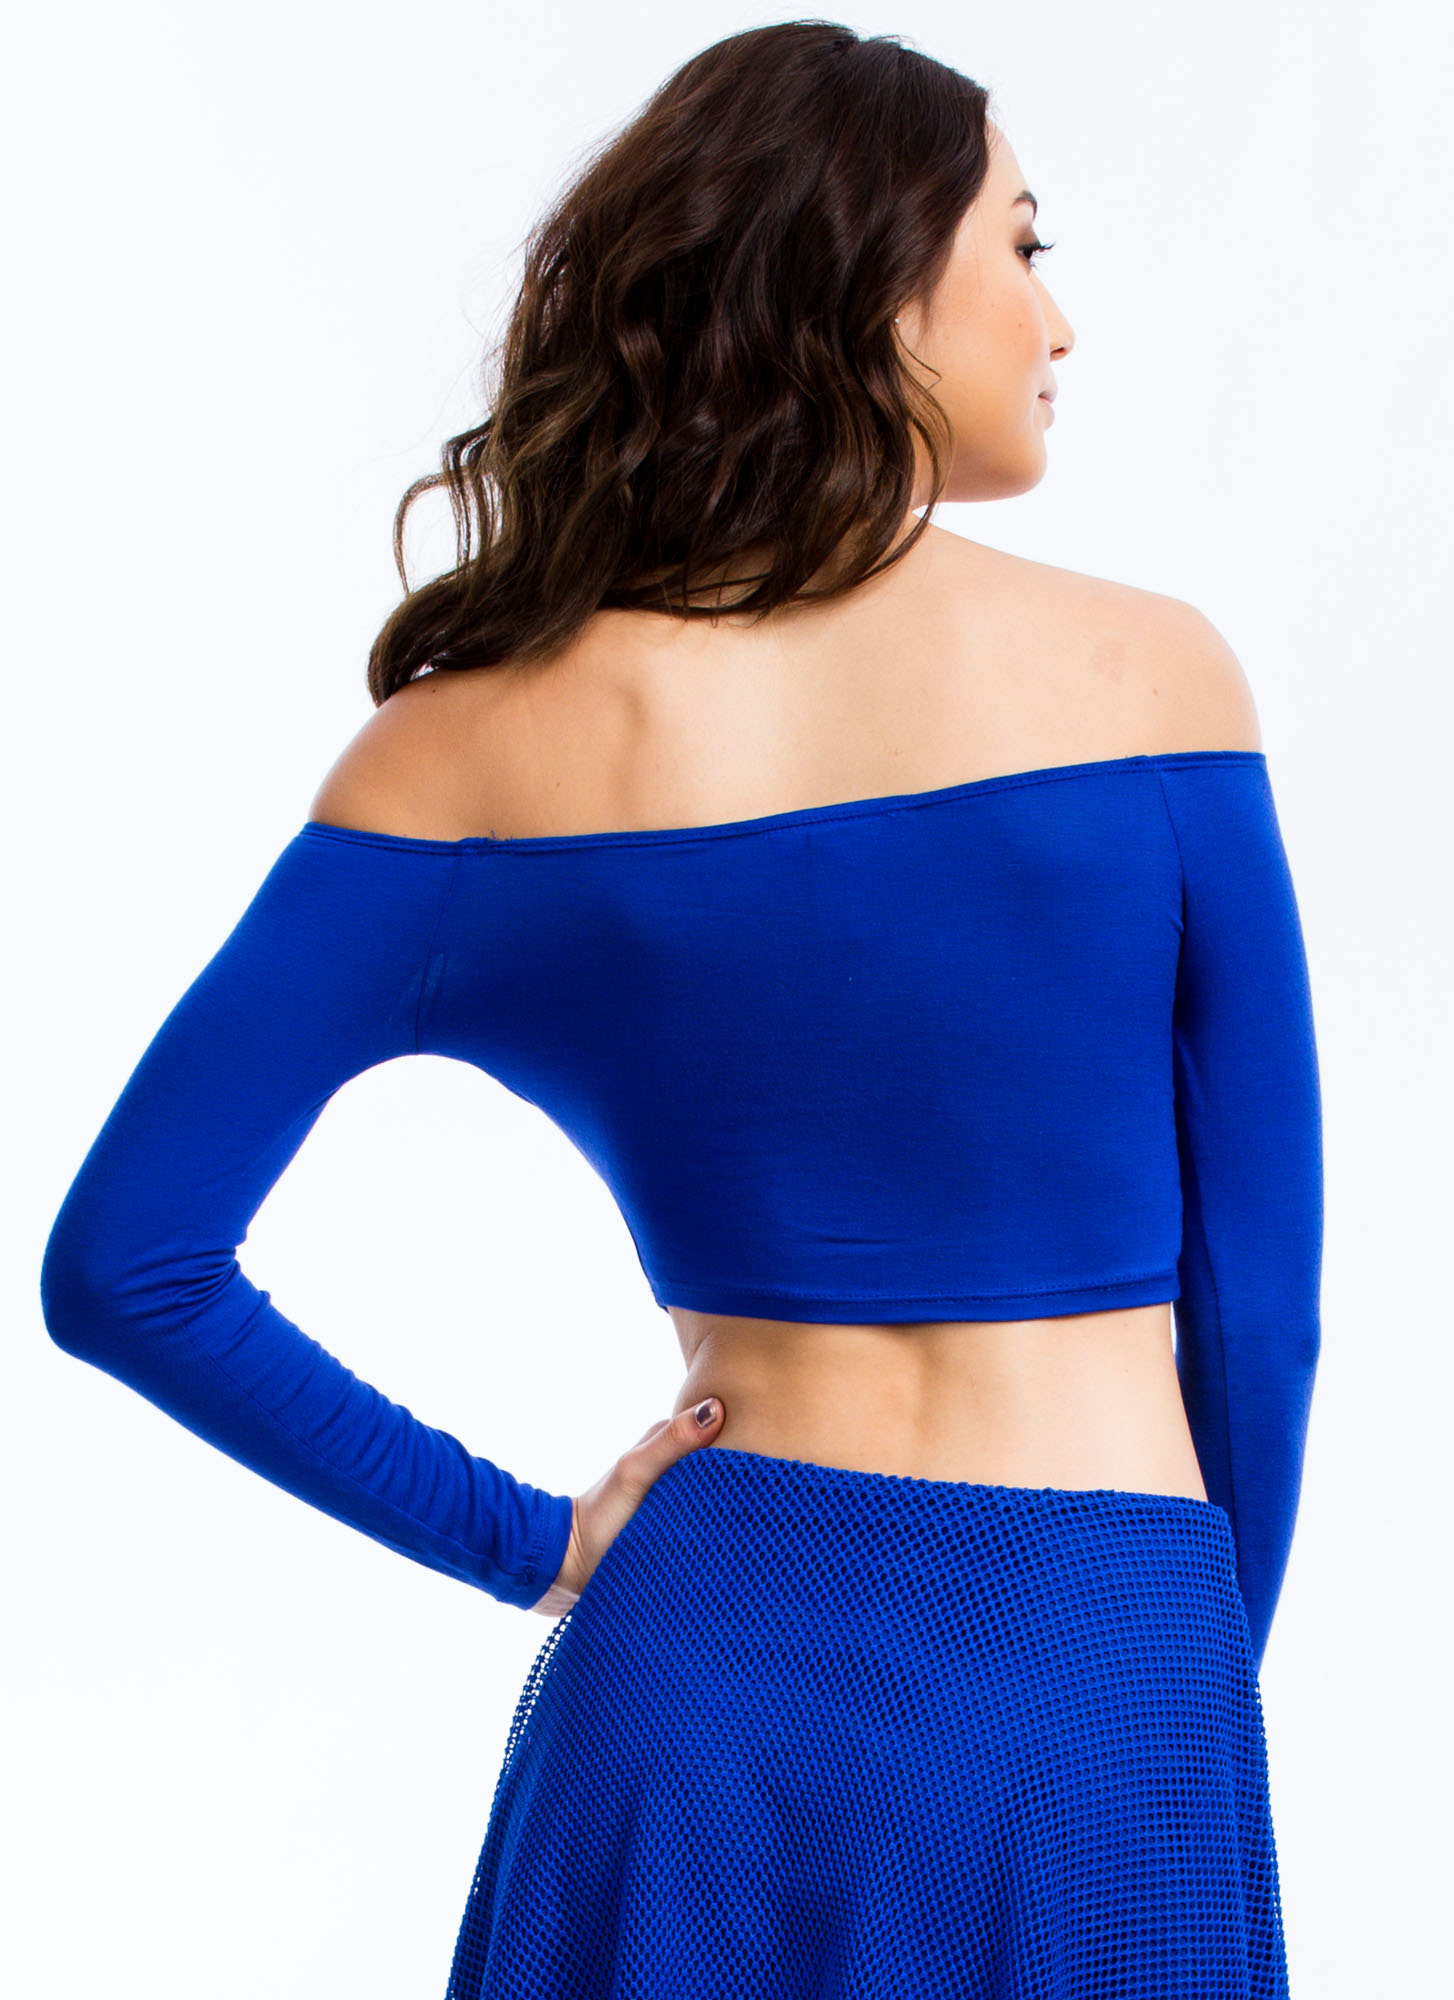 Shrug It Off-Shoulder Cropped Top ROYAL